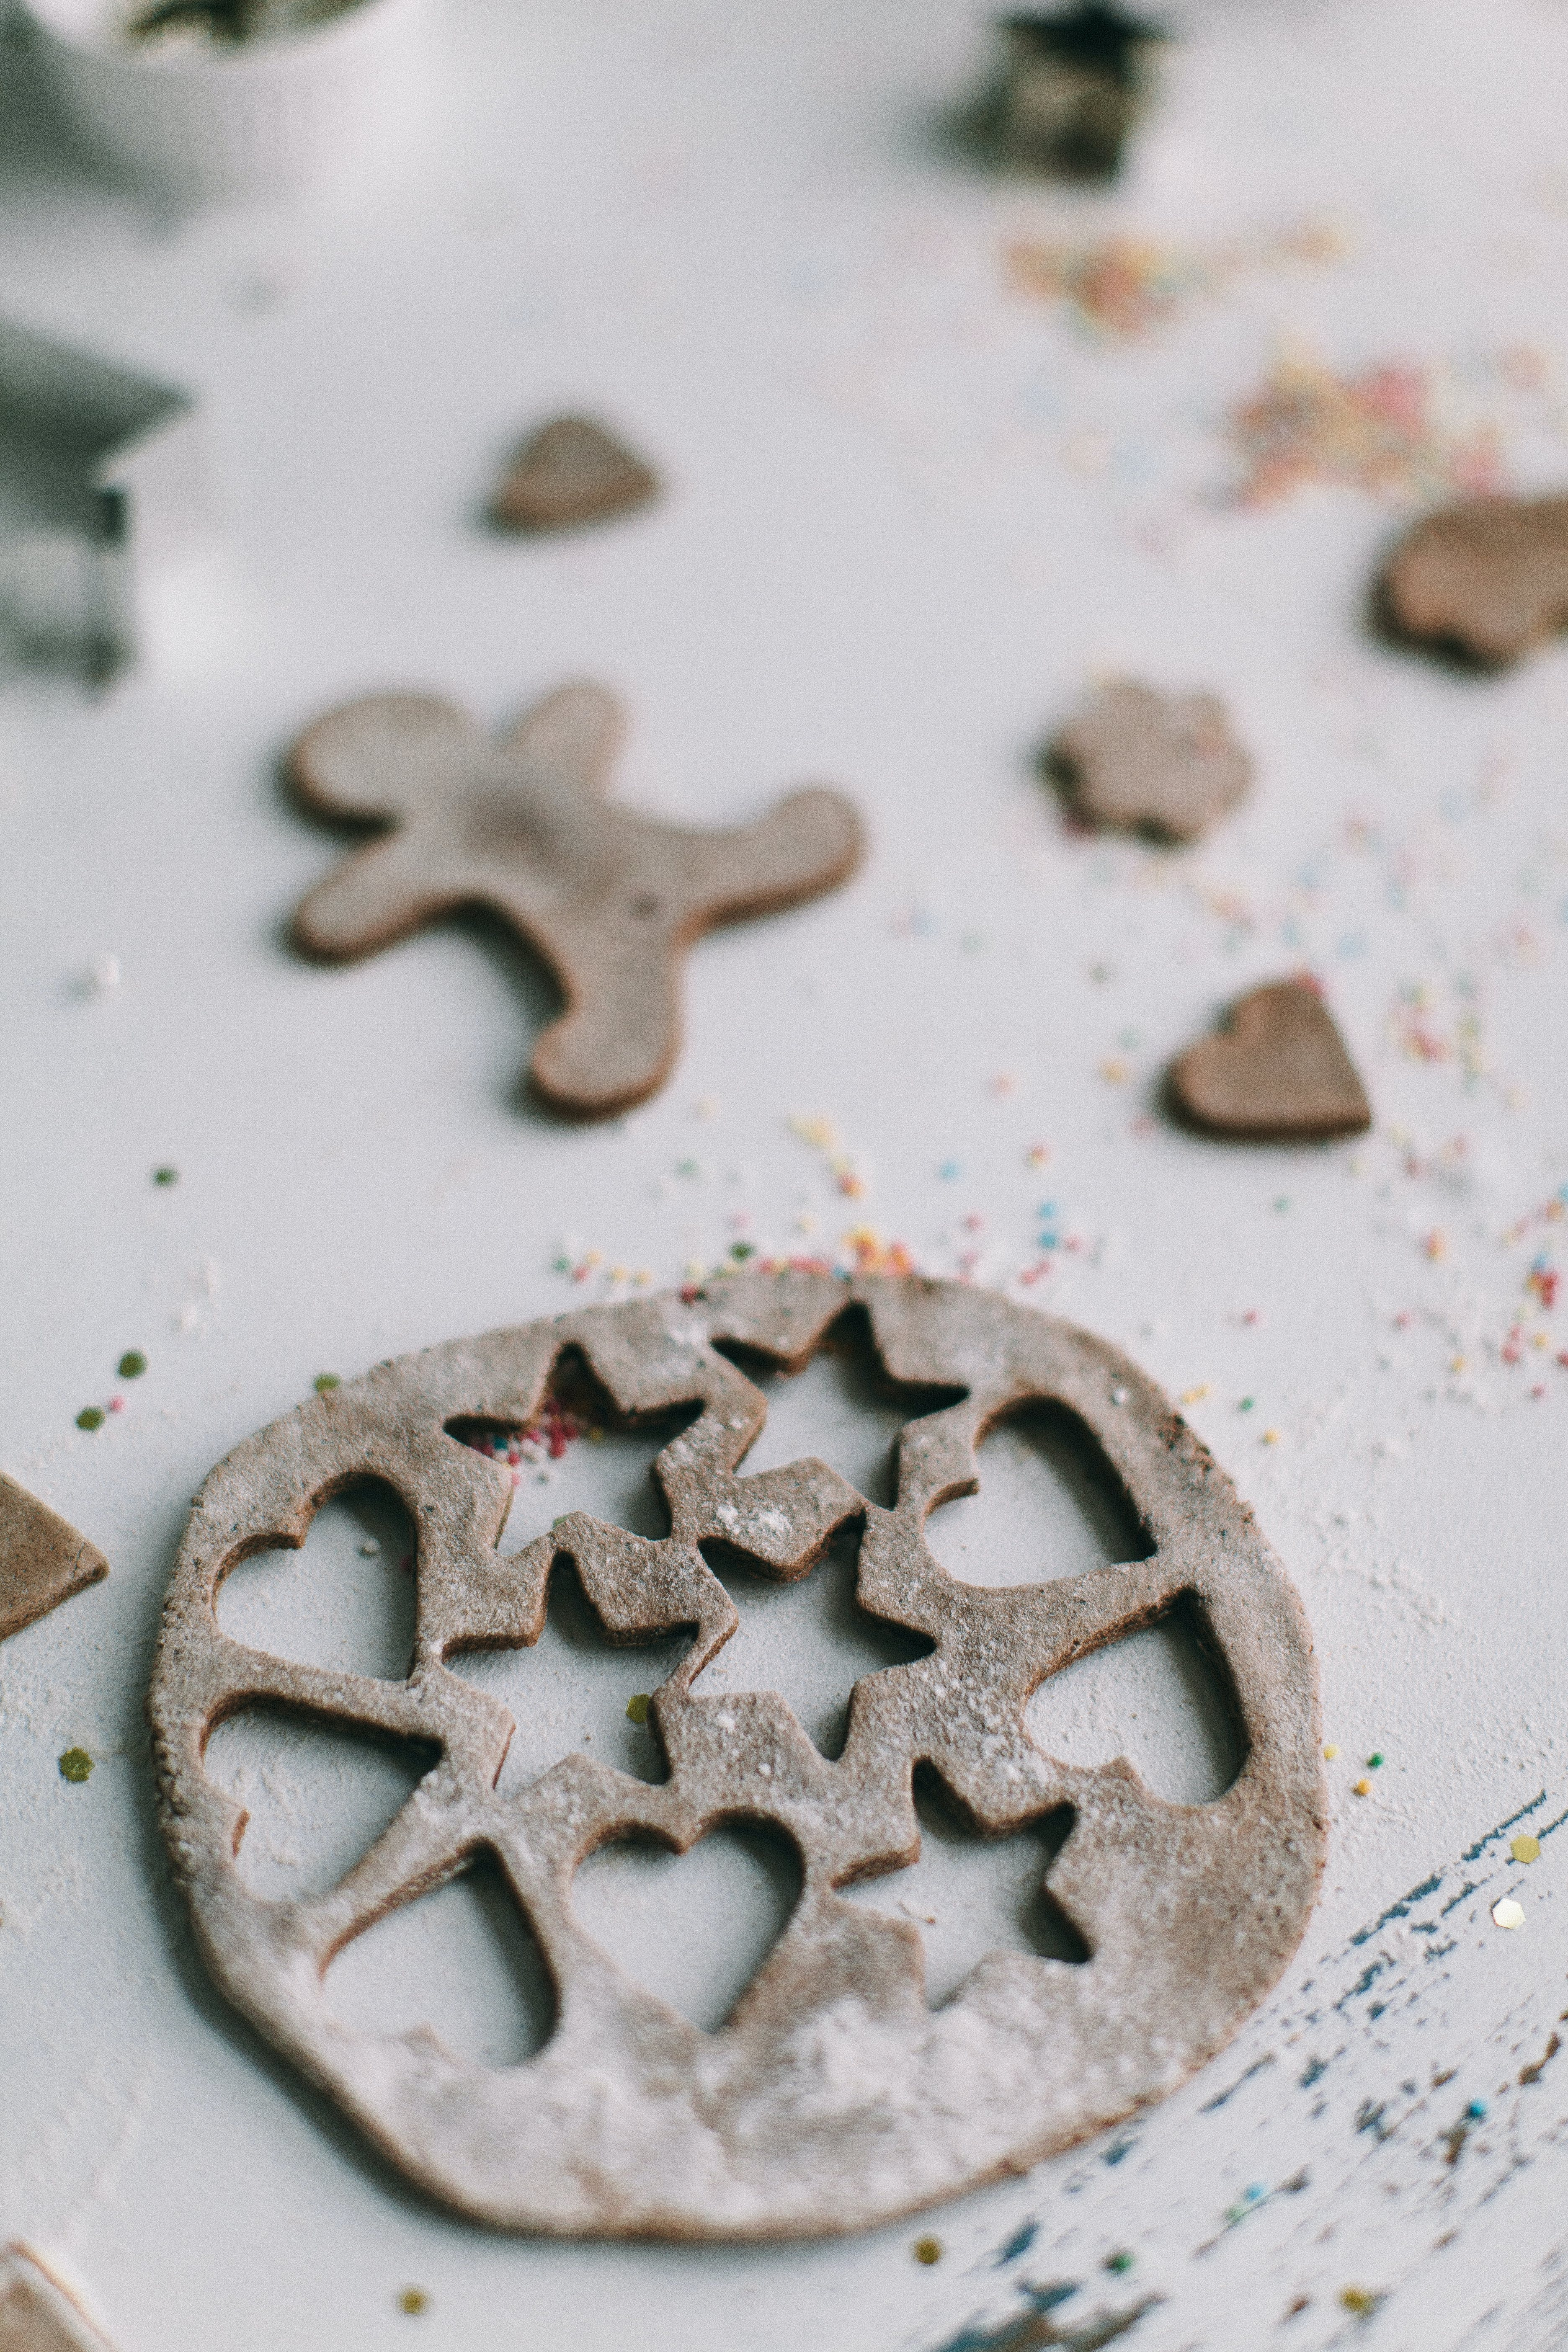 Shallow Focus Photography of Cookie Shapes